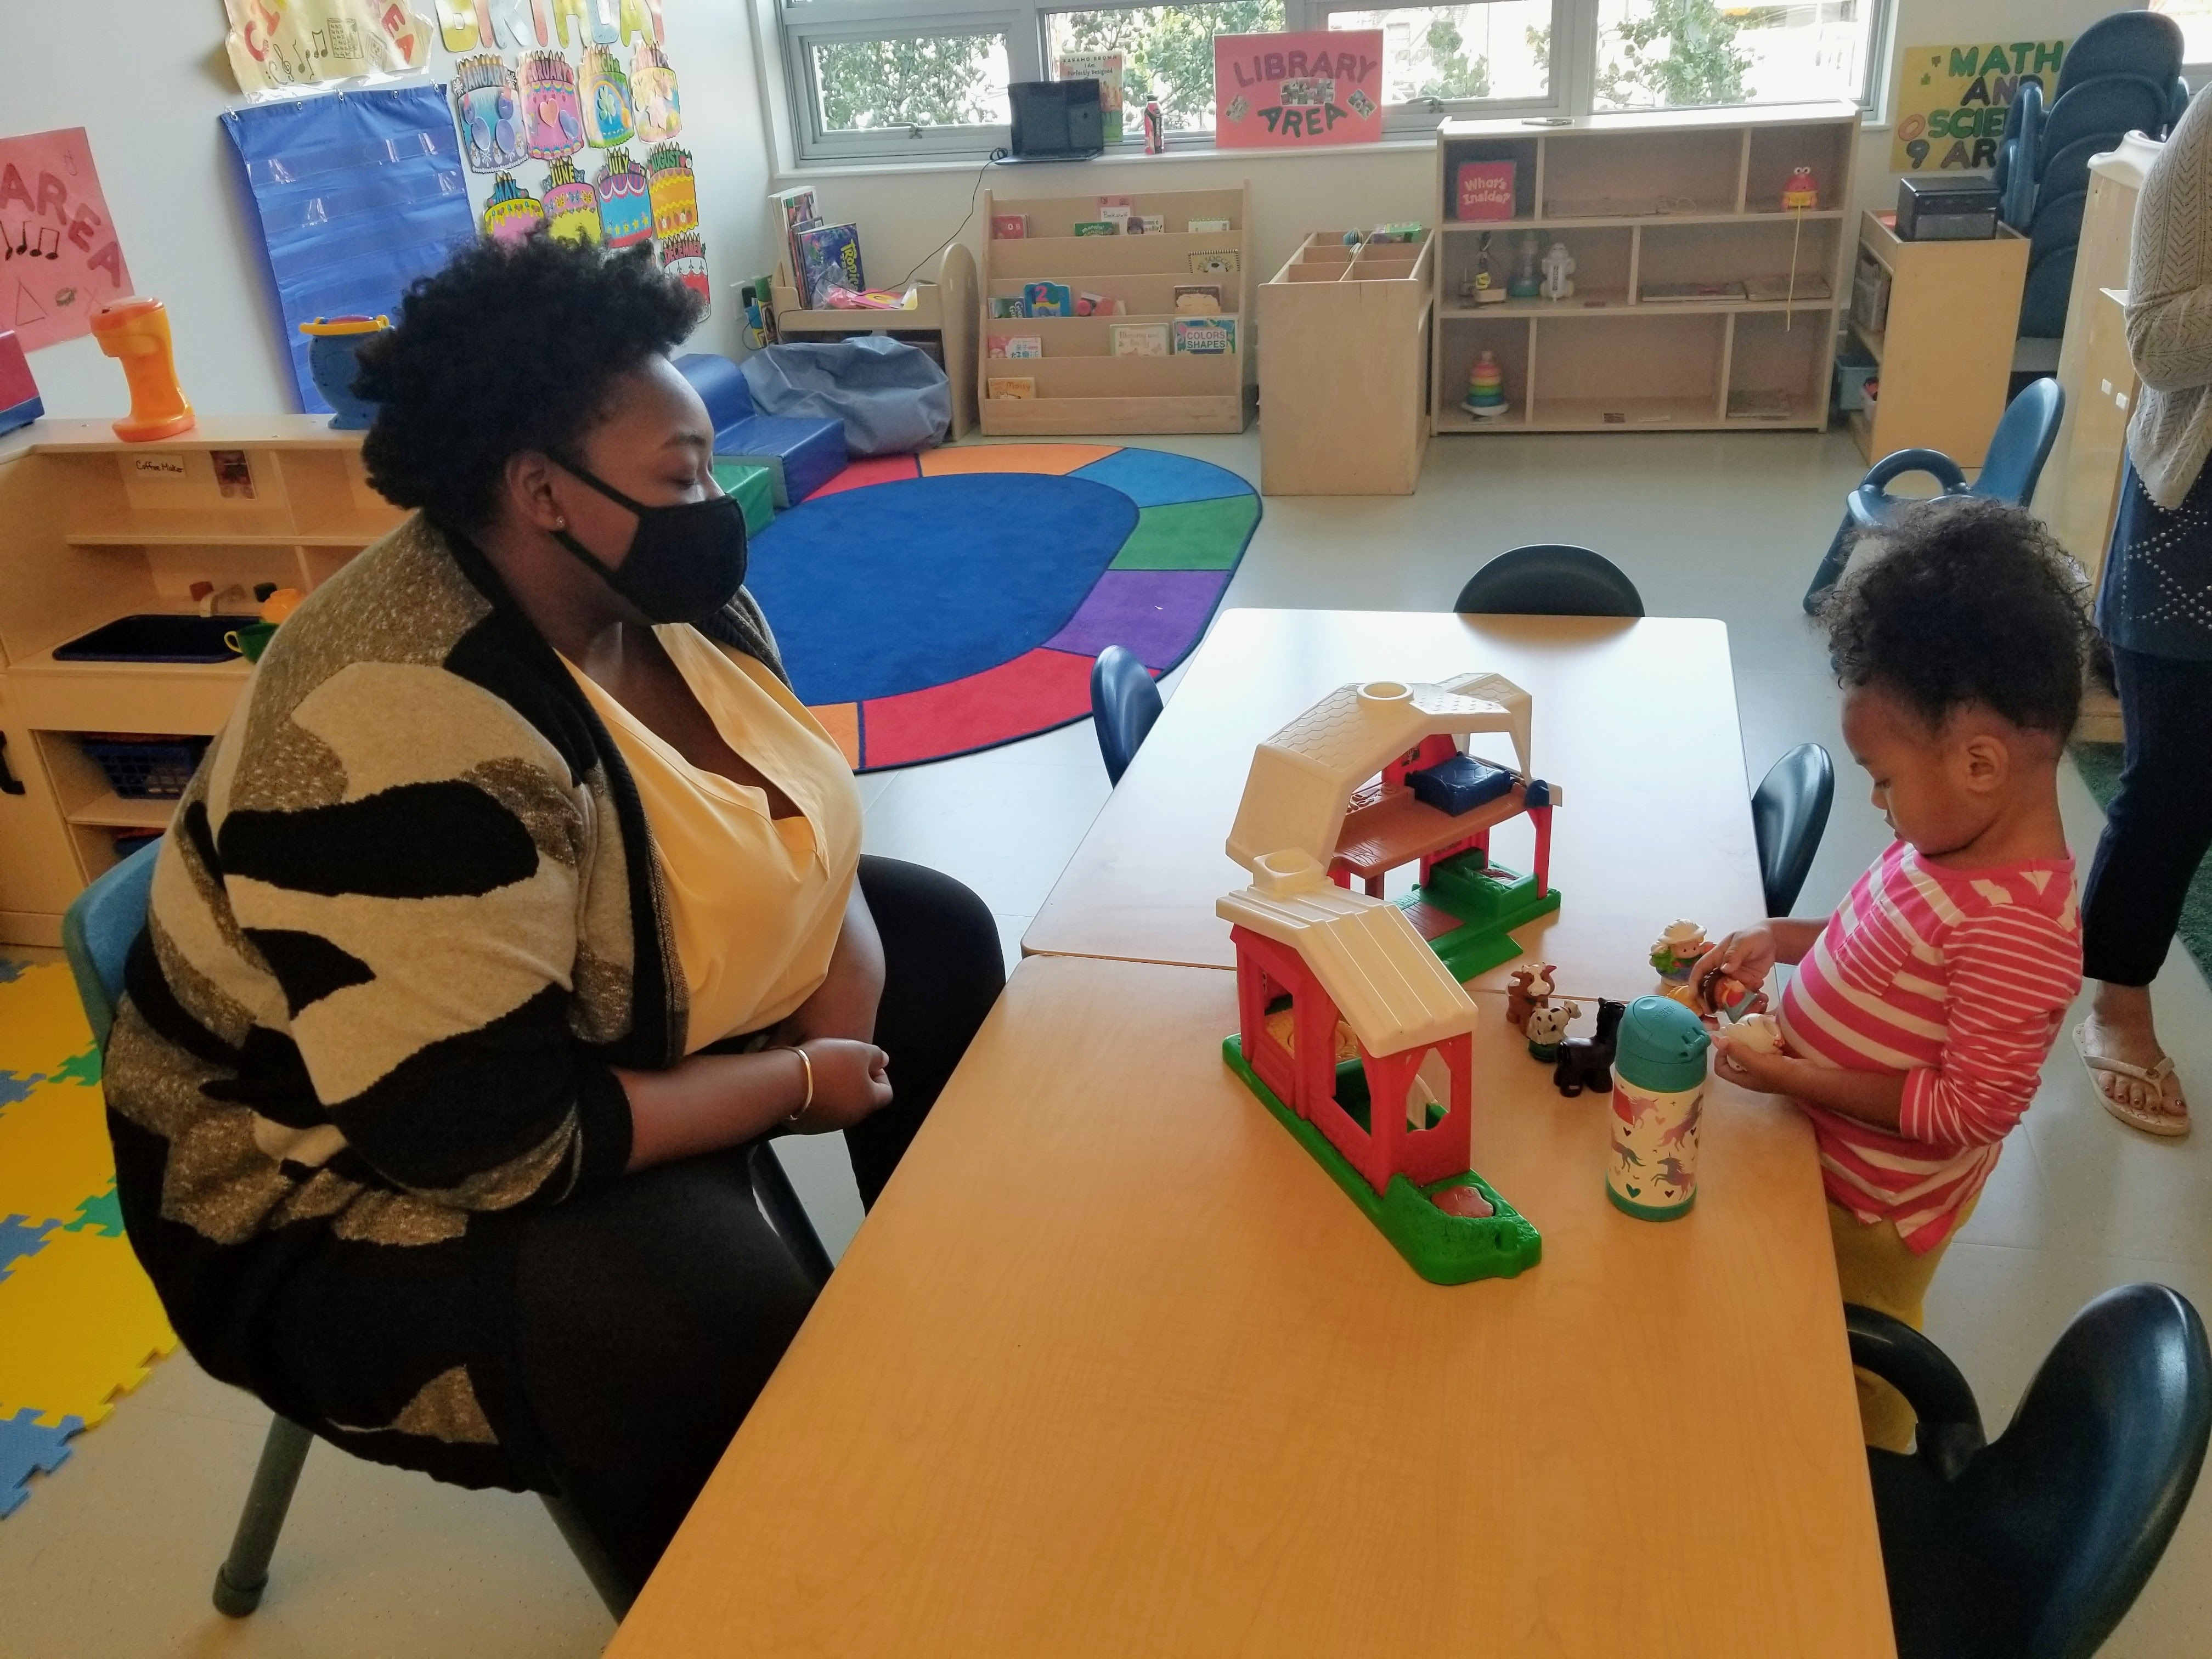 Staff wearing mask sit across a table from a child playing with blocks